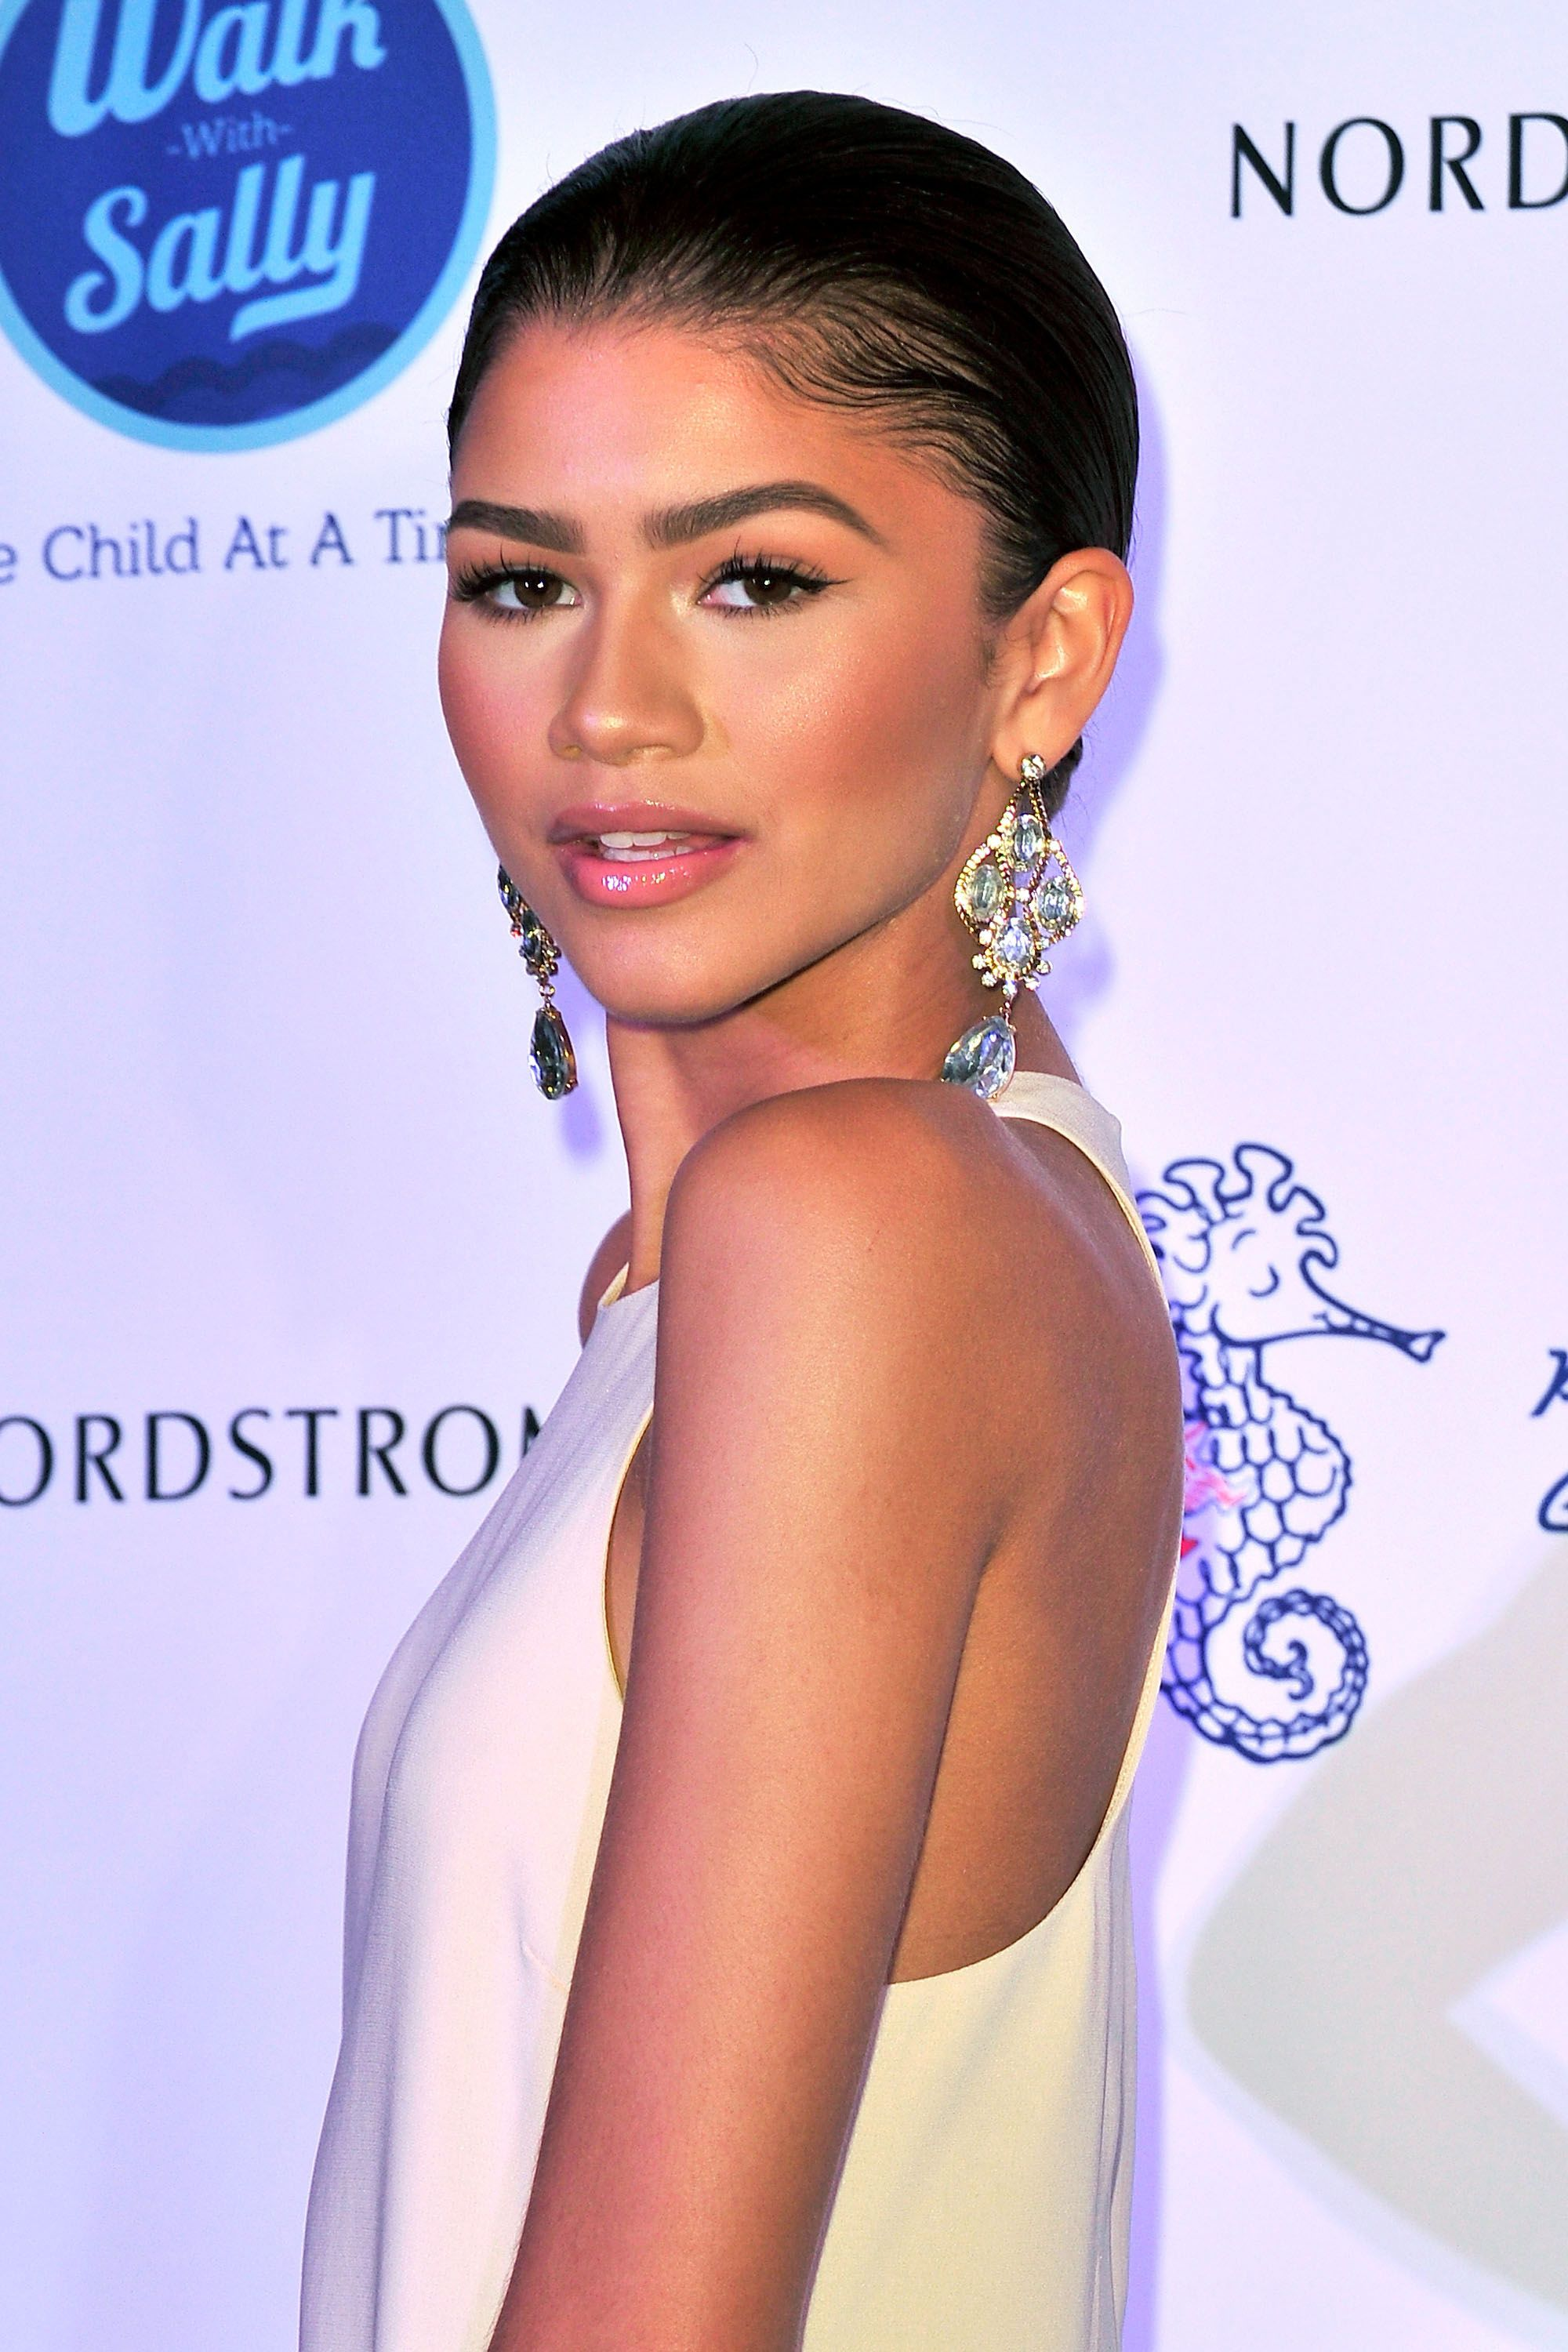 10 Times Zendaya Secretly Did Her Own Makeup for MajorEvents